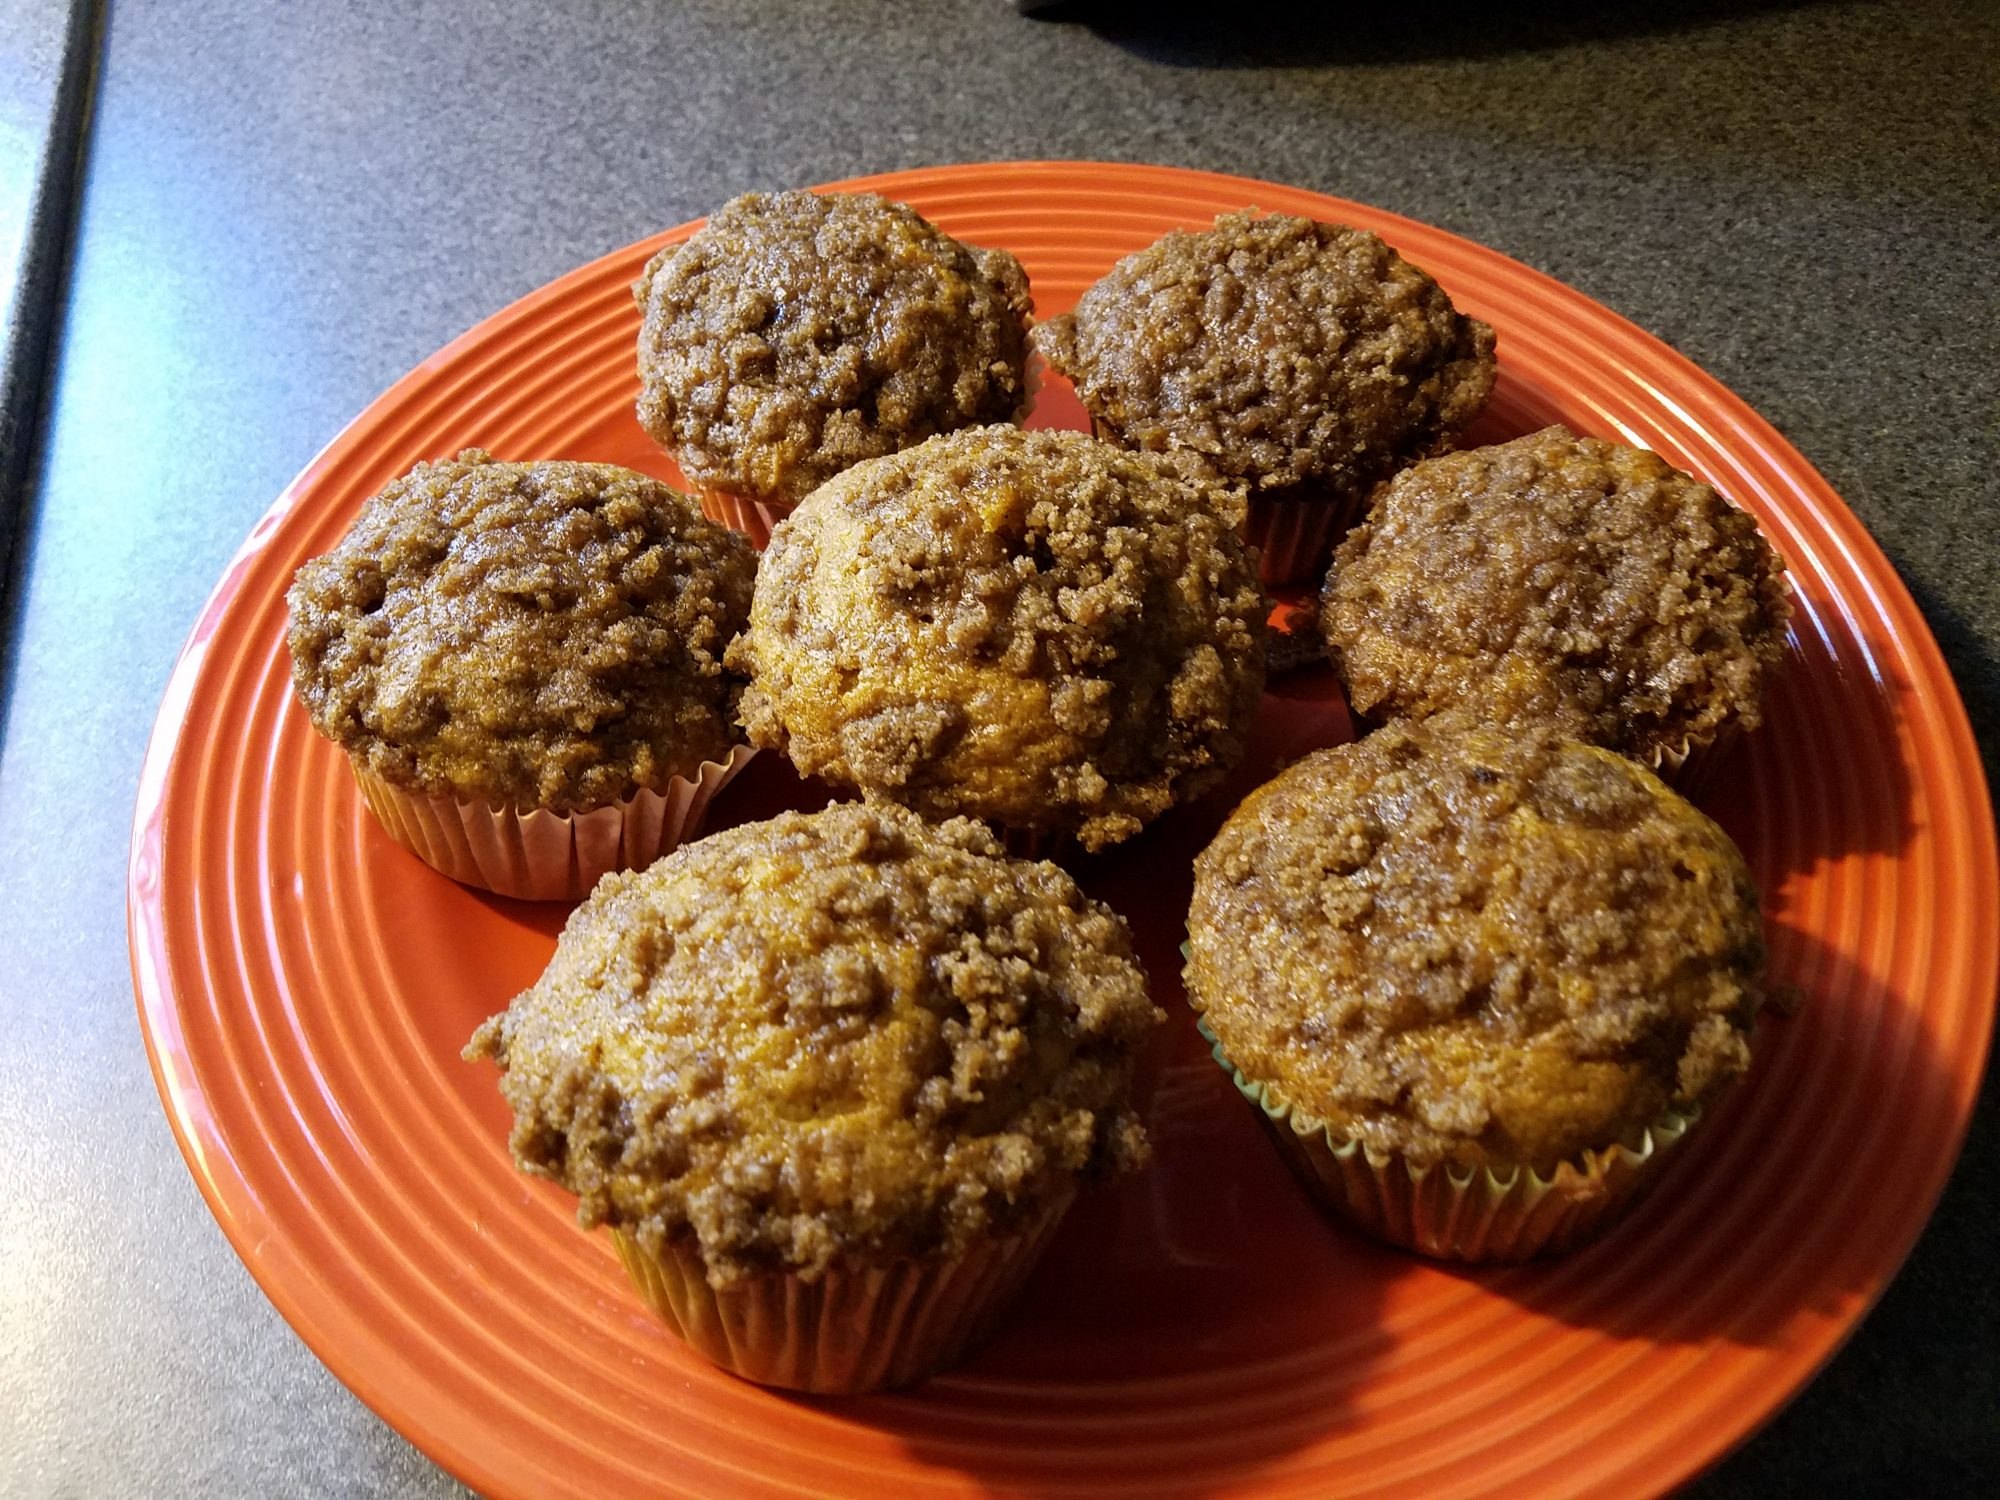 pumpkin muffins with streusel topping on orange plate